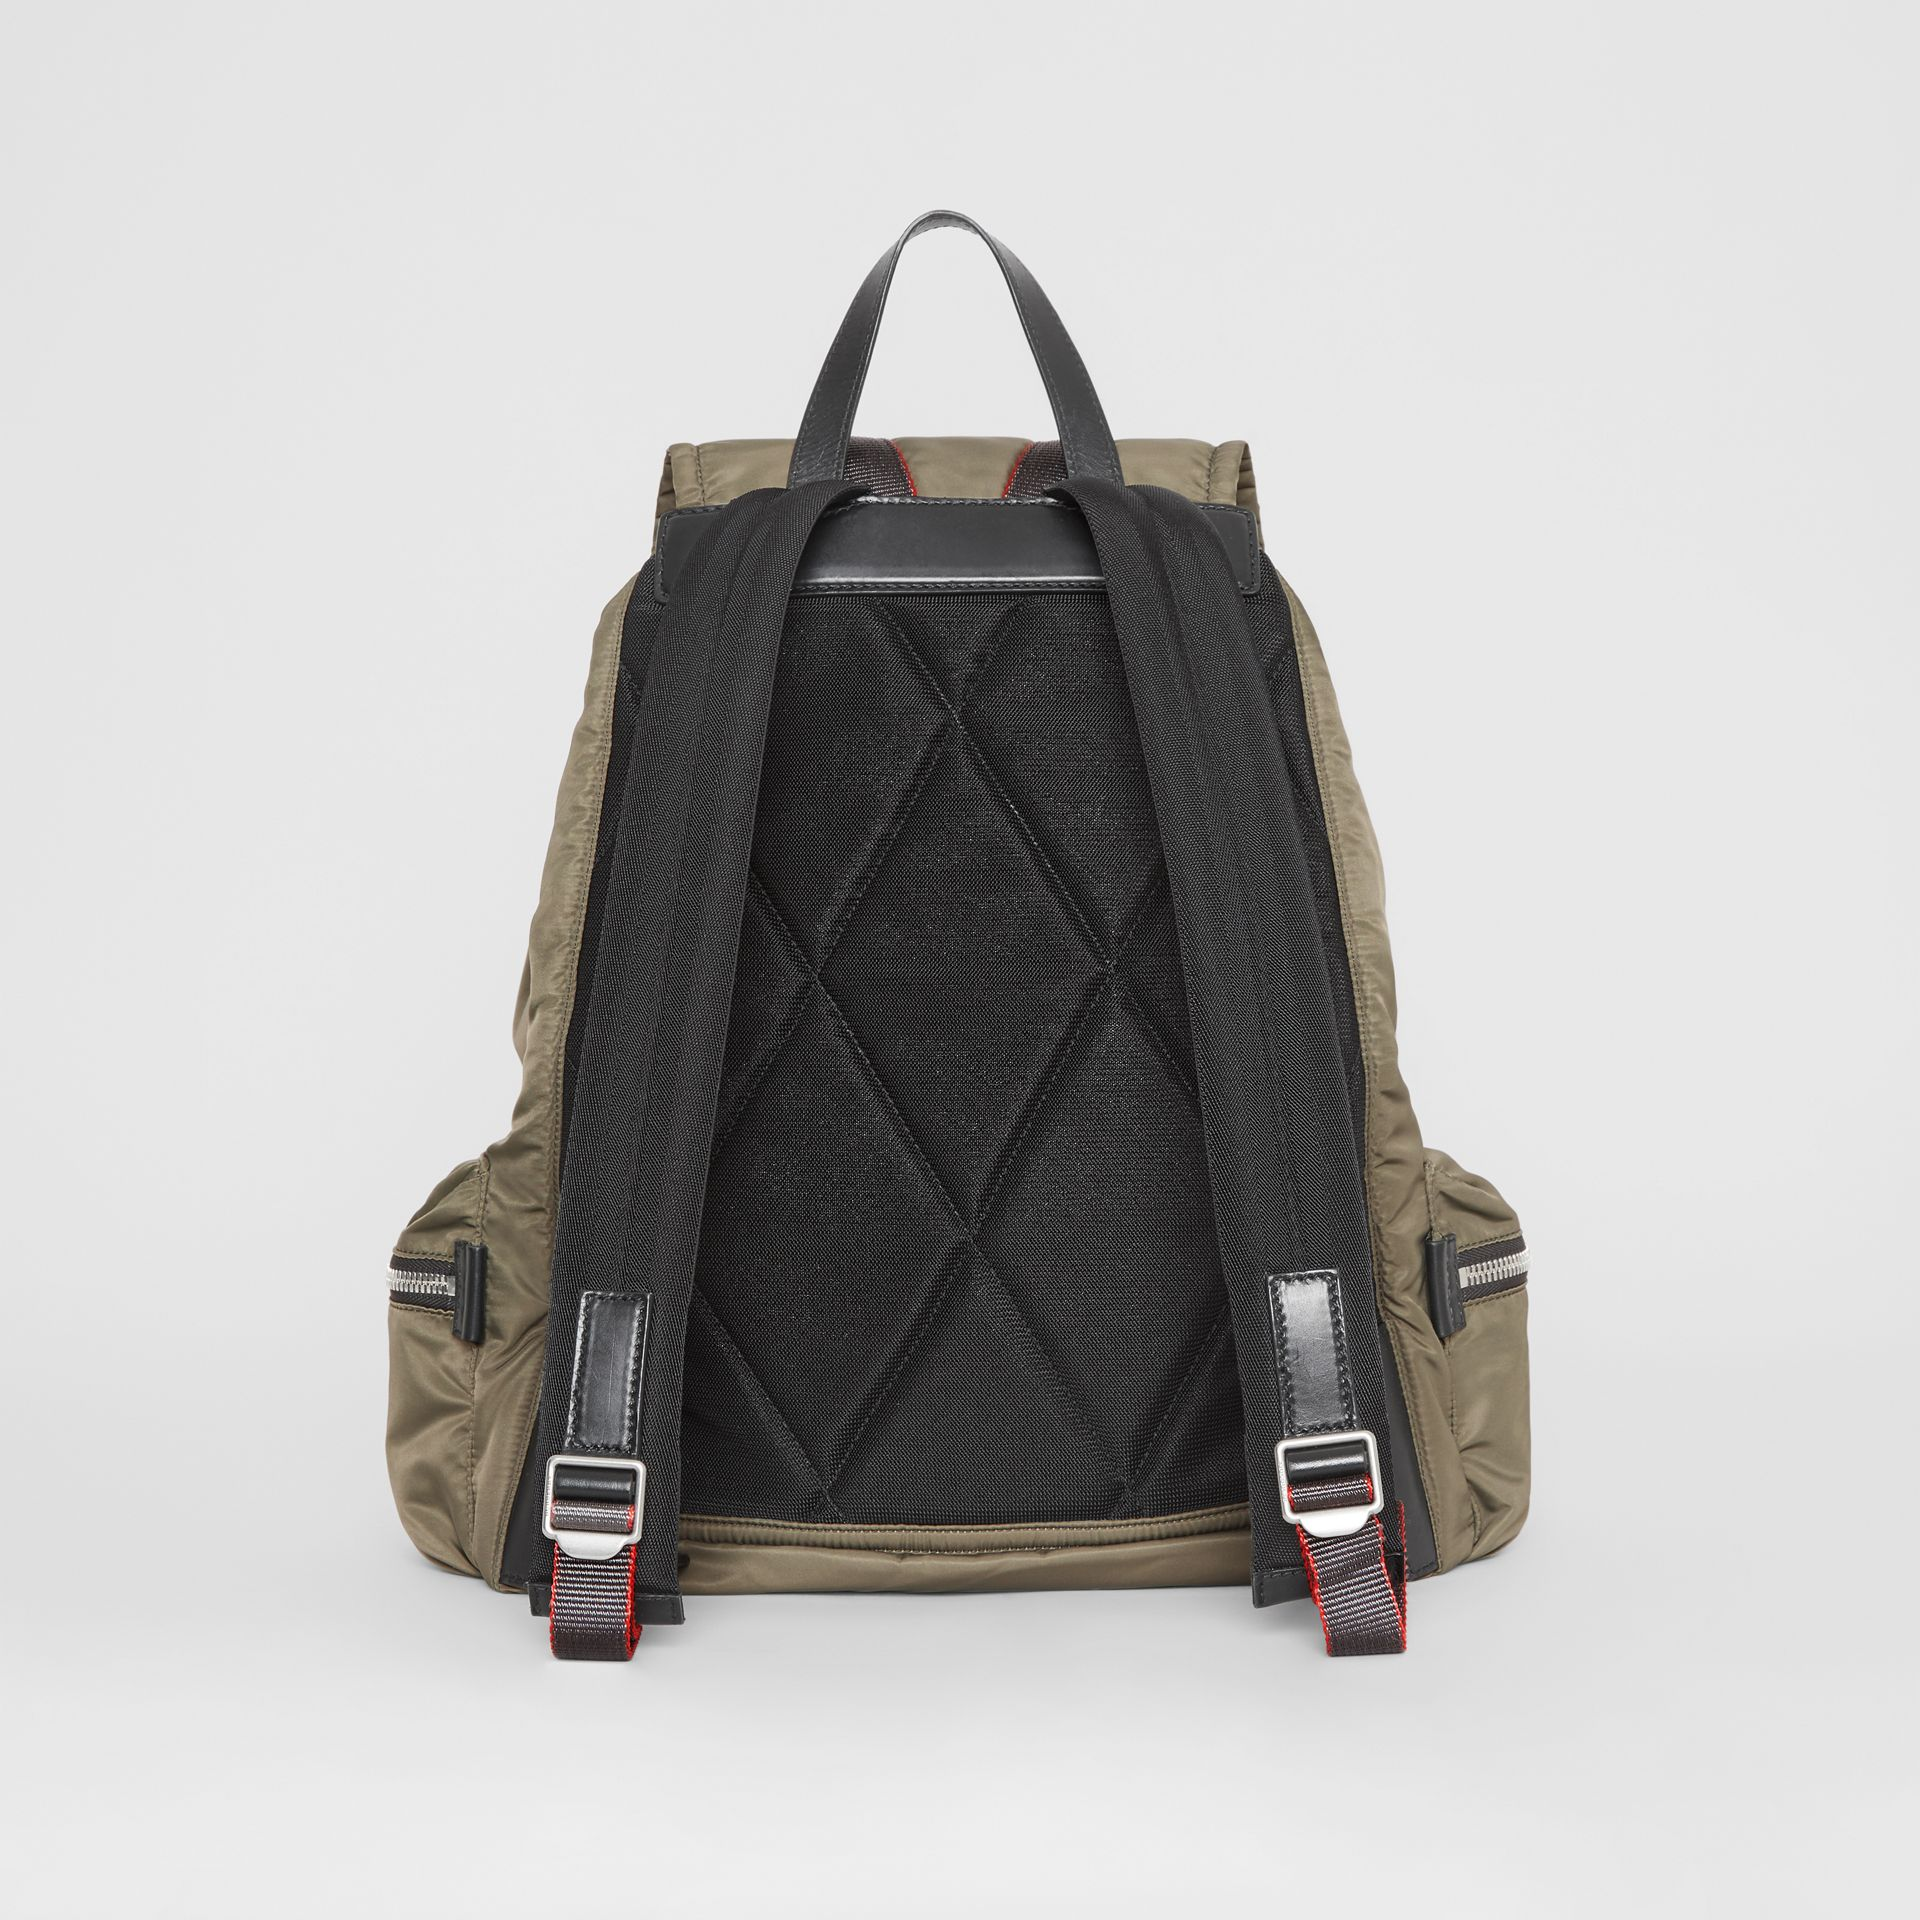 Sac The Rucksack extra-large en nylon façon aviateur (Céladon) - Homme | Burberry - photo de la galerie 6